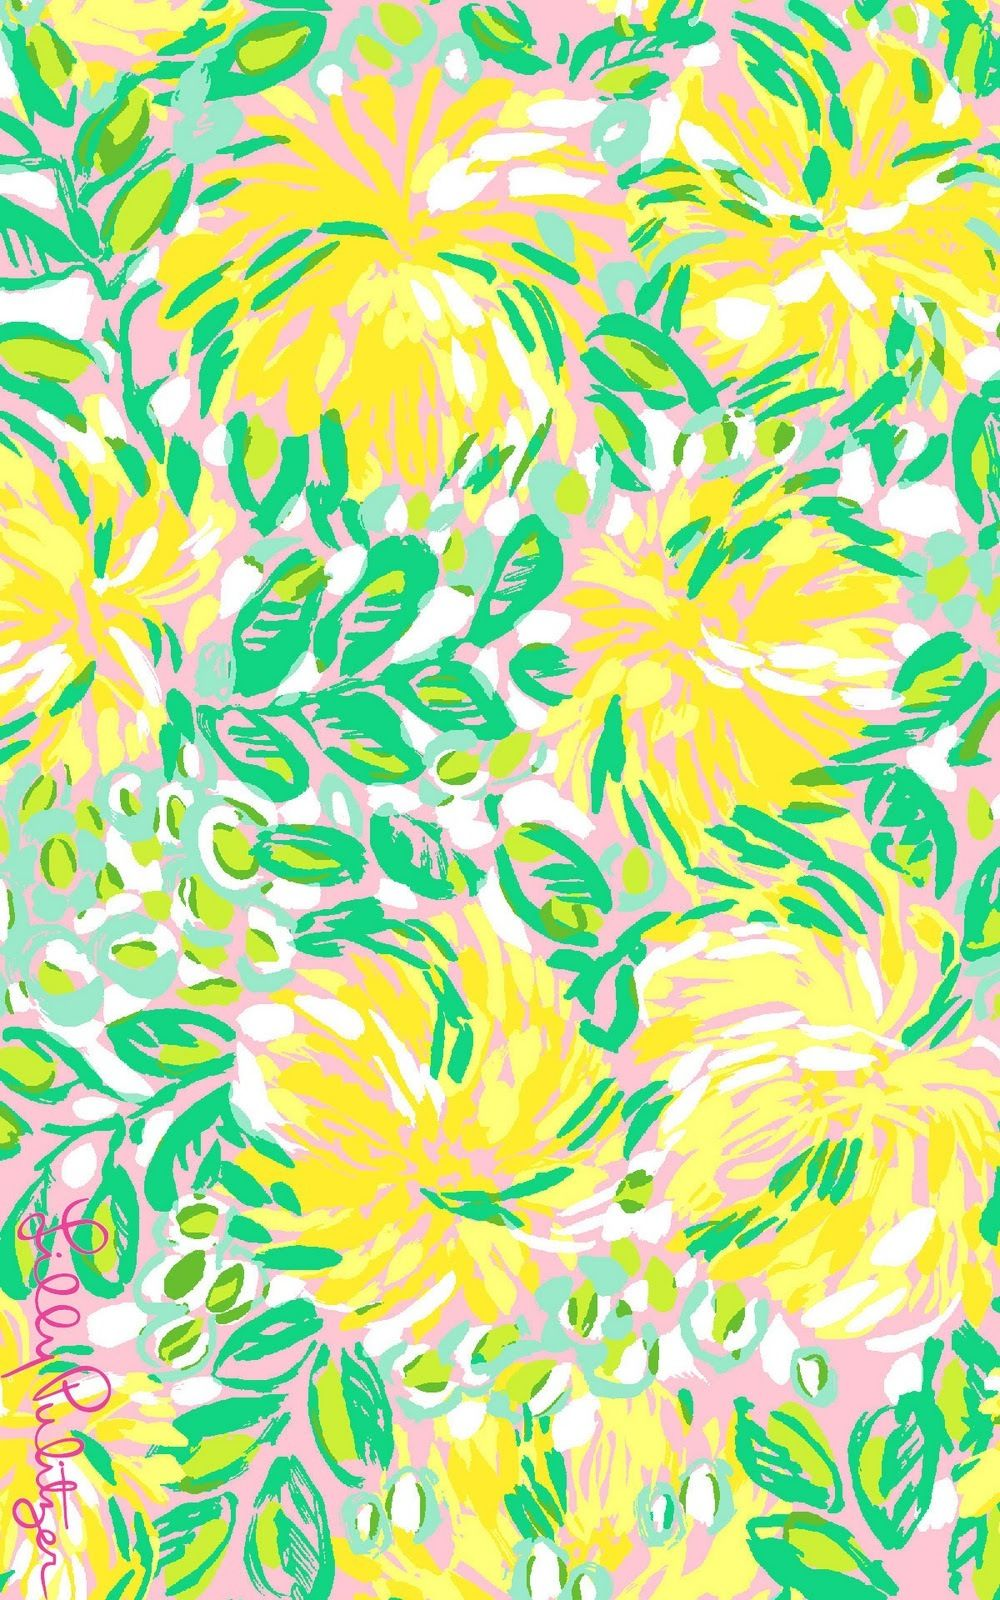 Lily iphone wallpaper pattern graphics pinterest - Lilly pulitzer iphone wallpaper ...